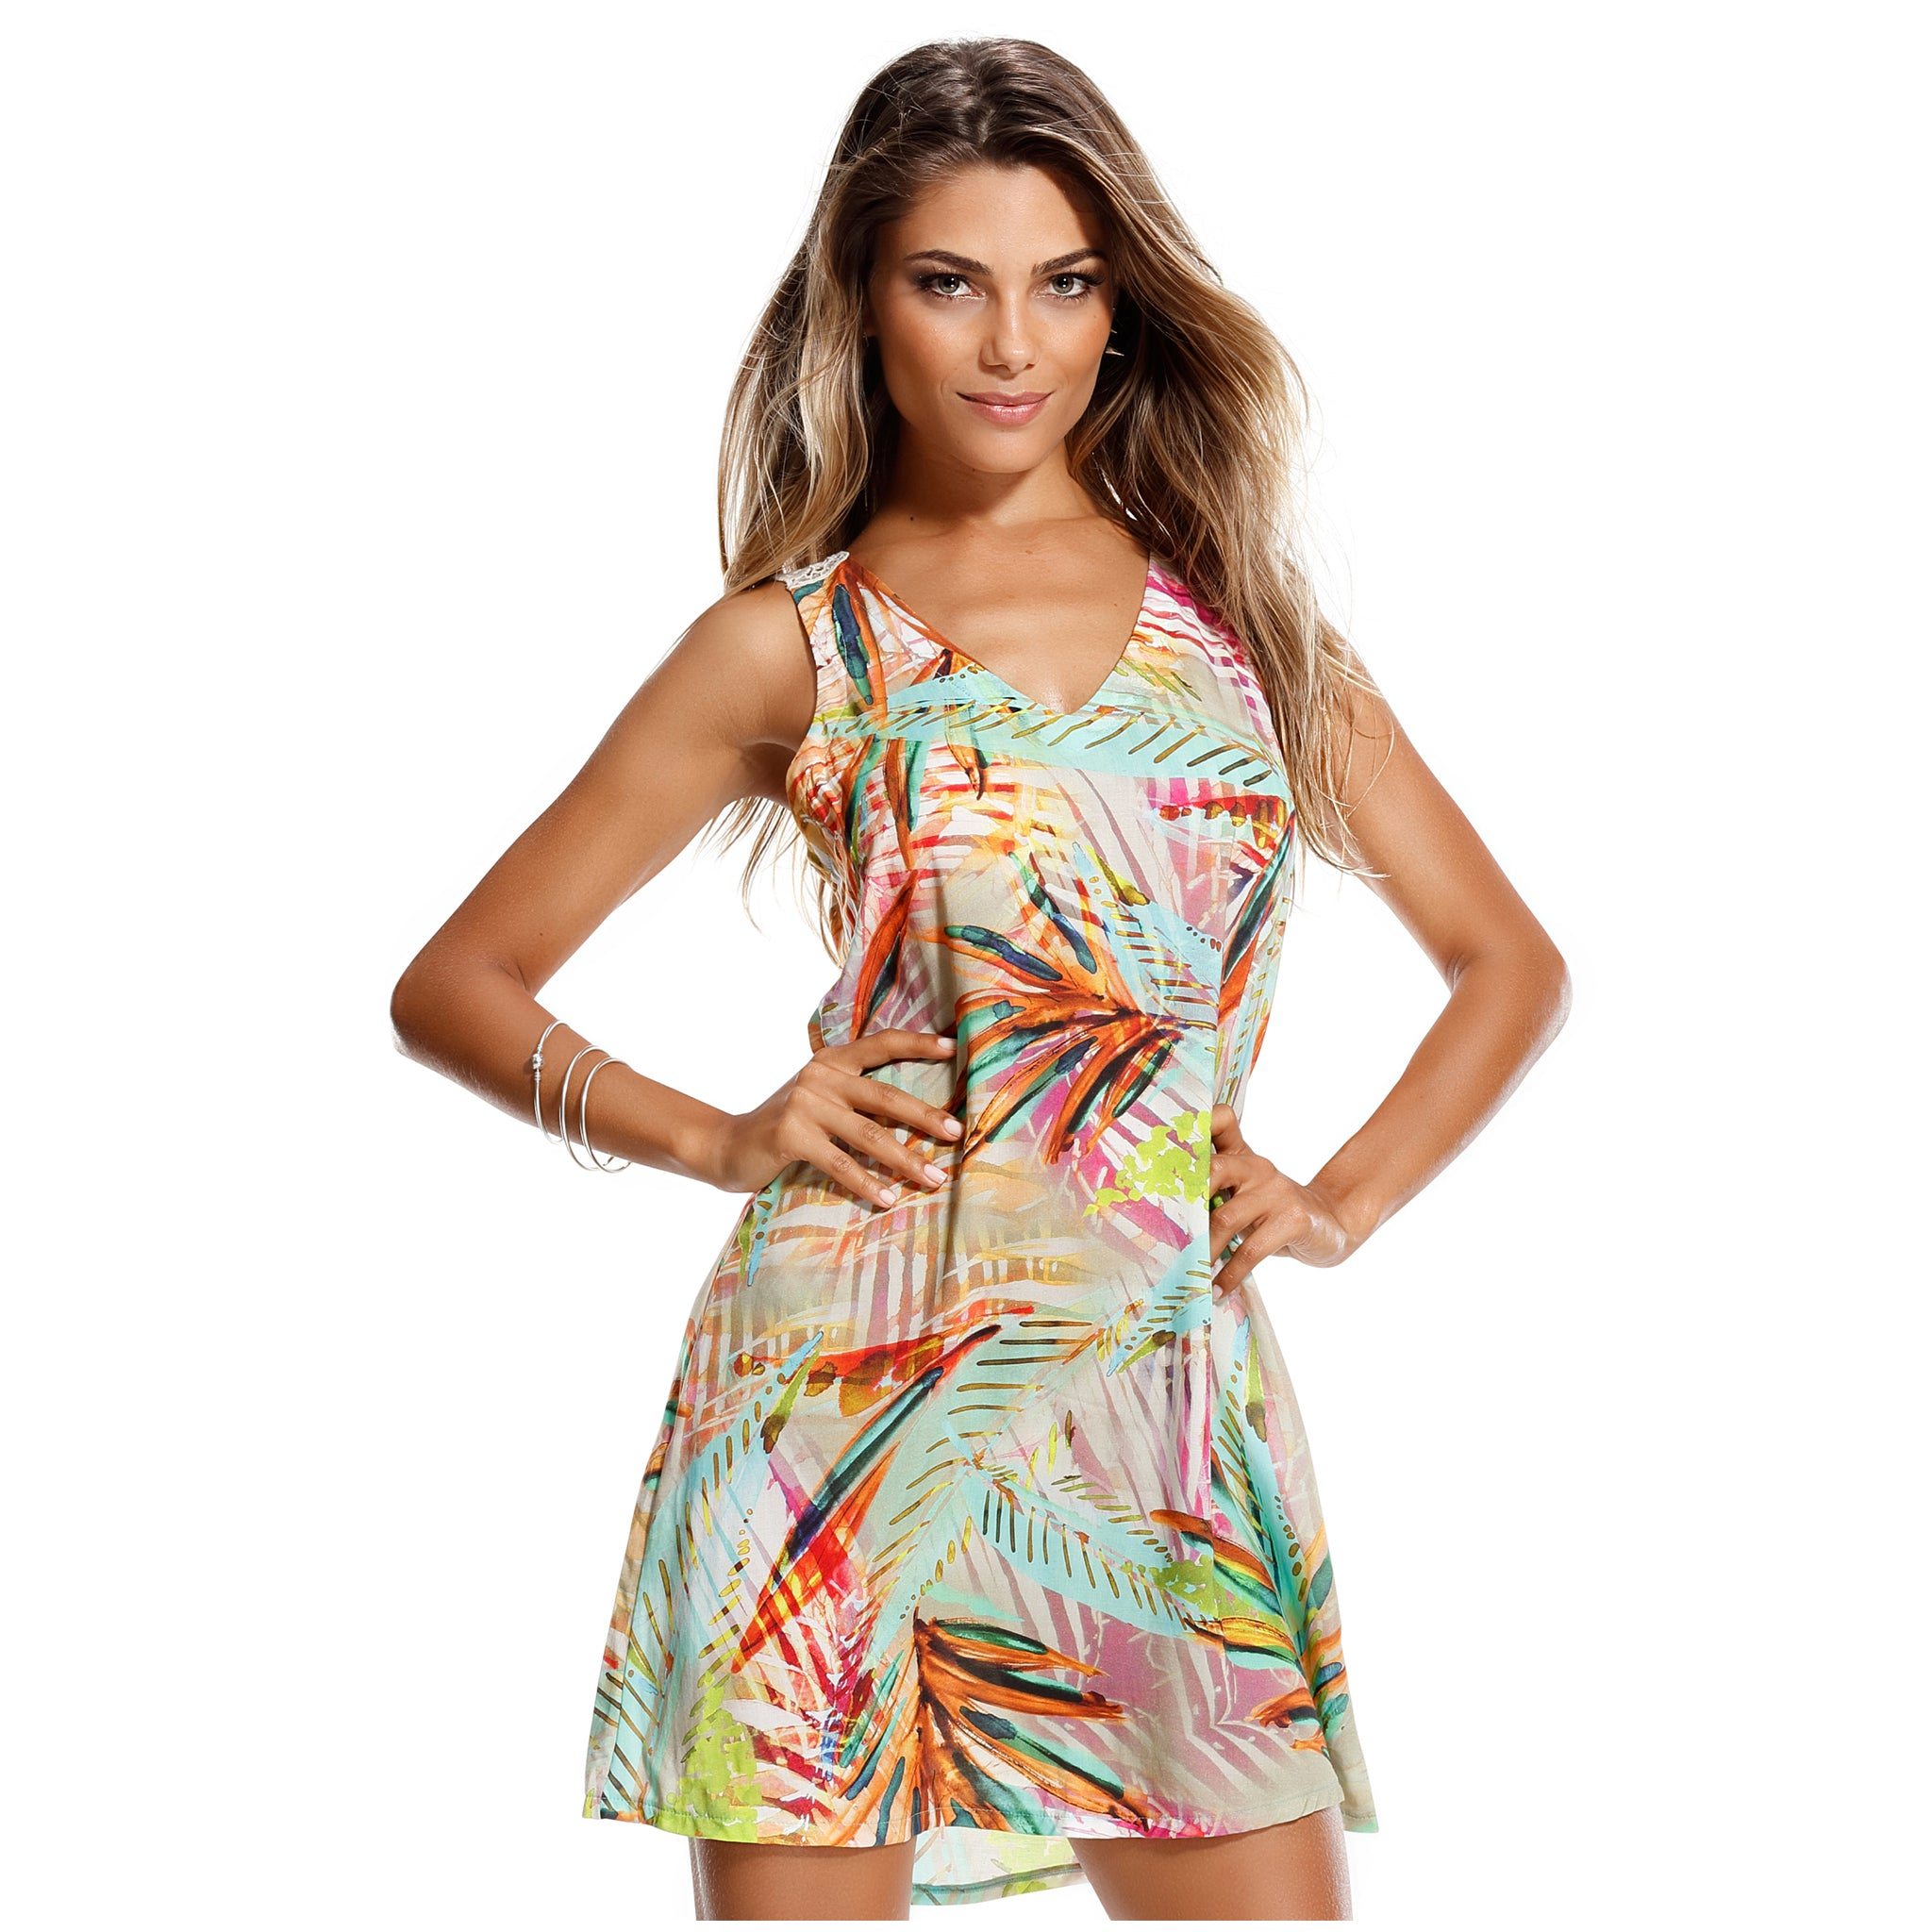 Charming beachwear dress hollow out detail - Diva Brazilian Swimwear Collection